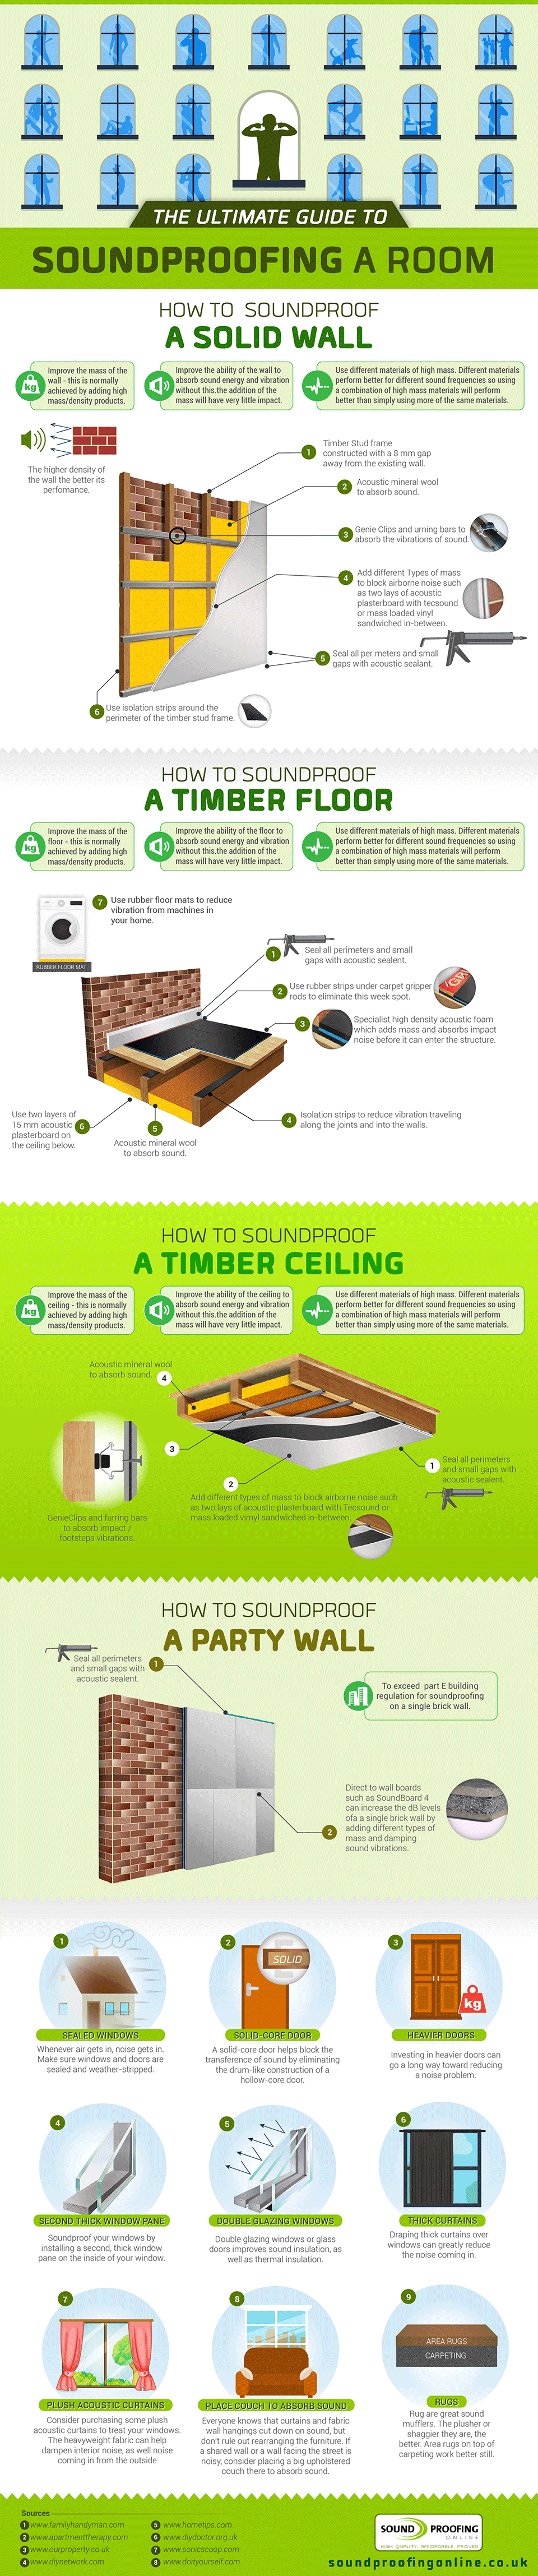 Soundproofing-room-infographic